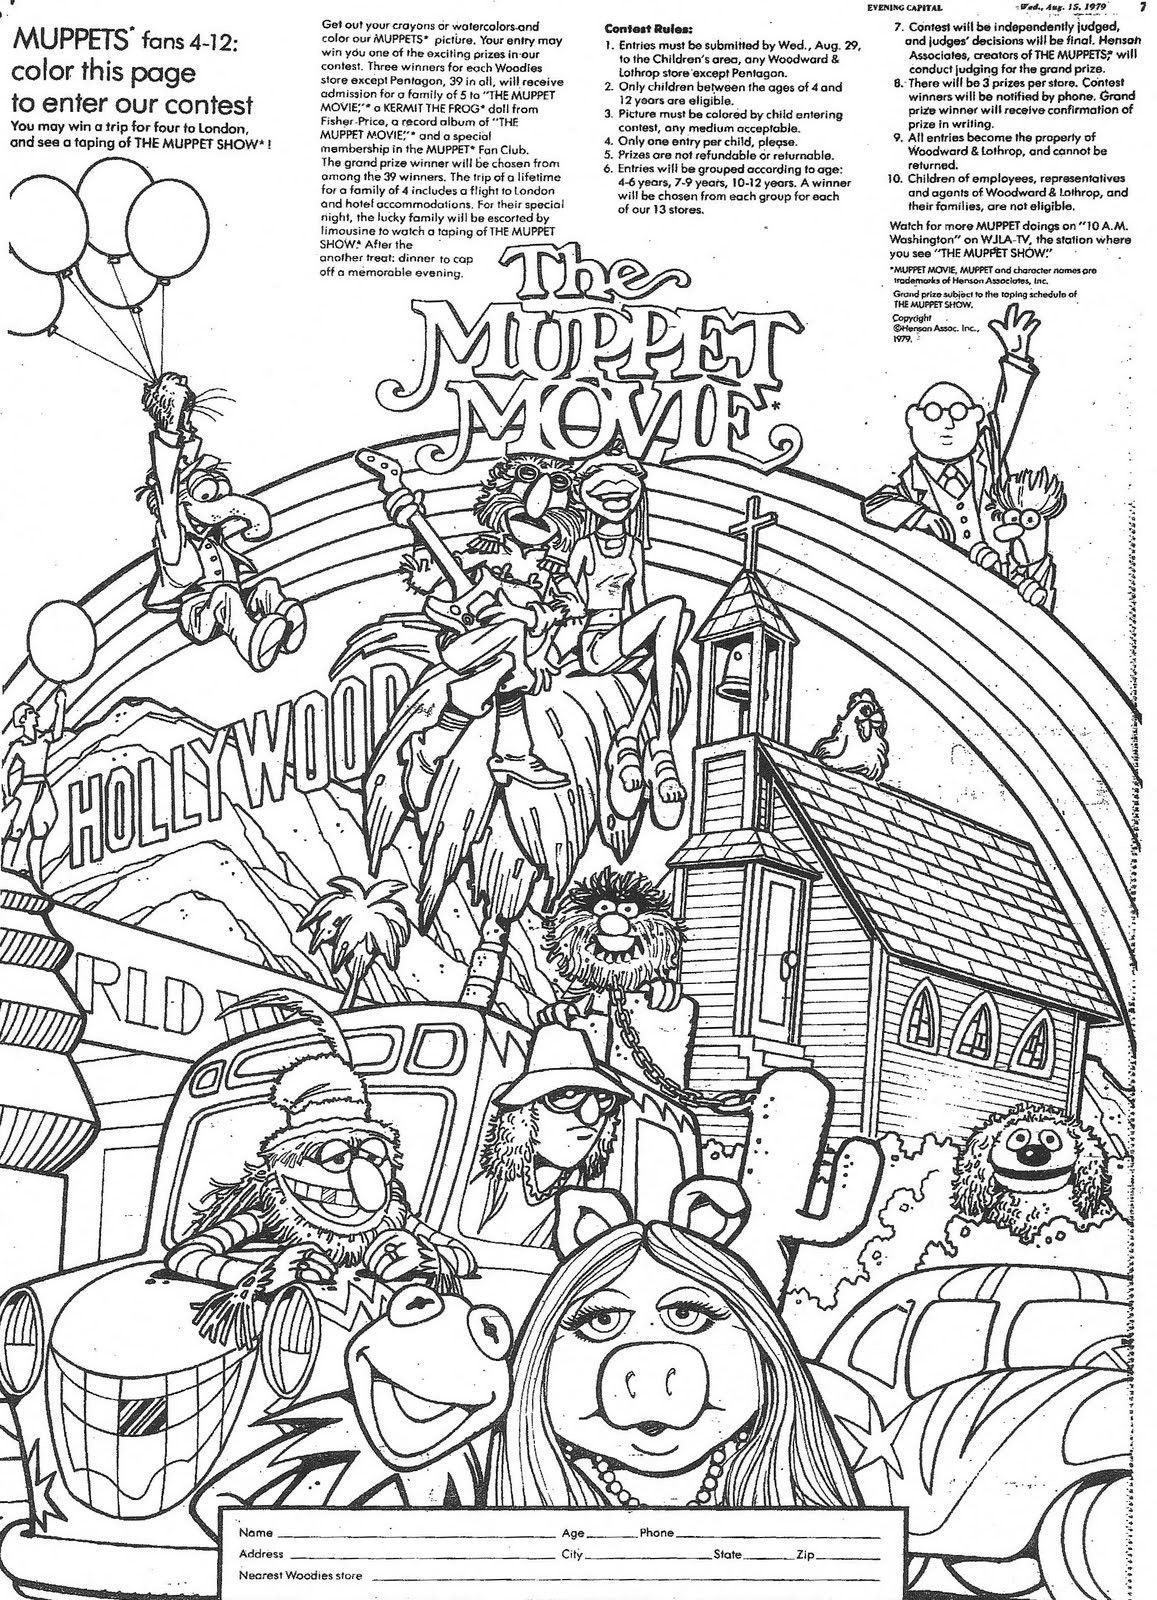 muppet movie coloring pages - photo#1